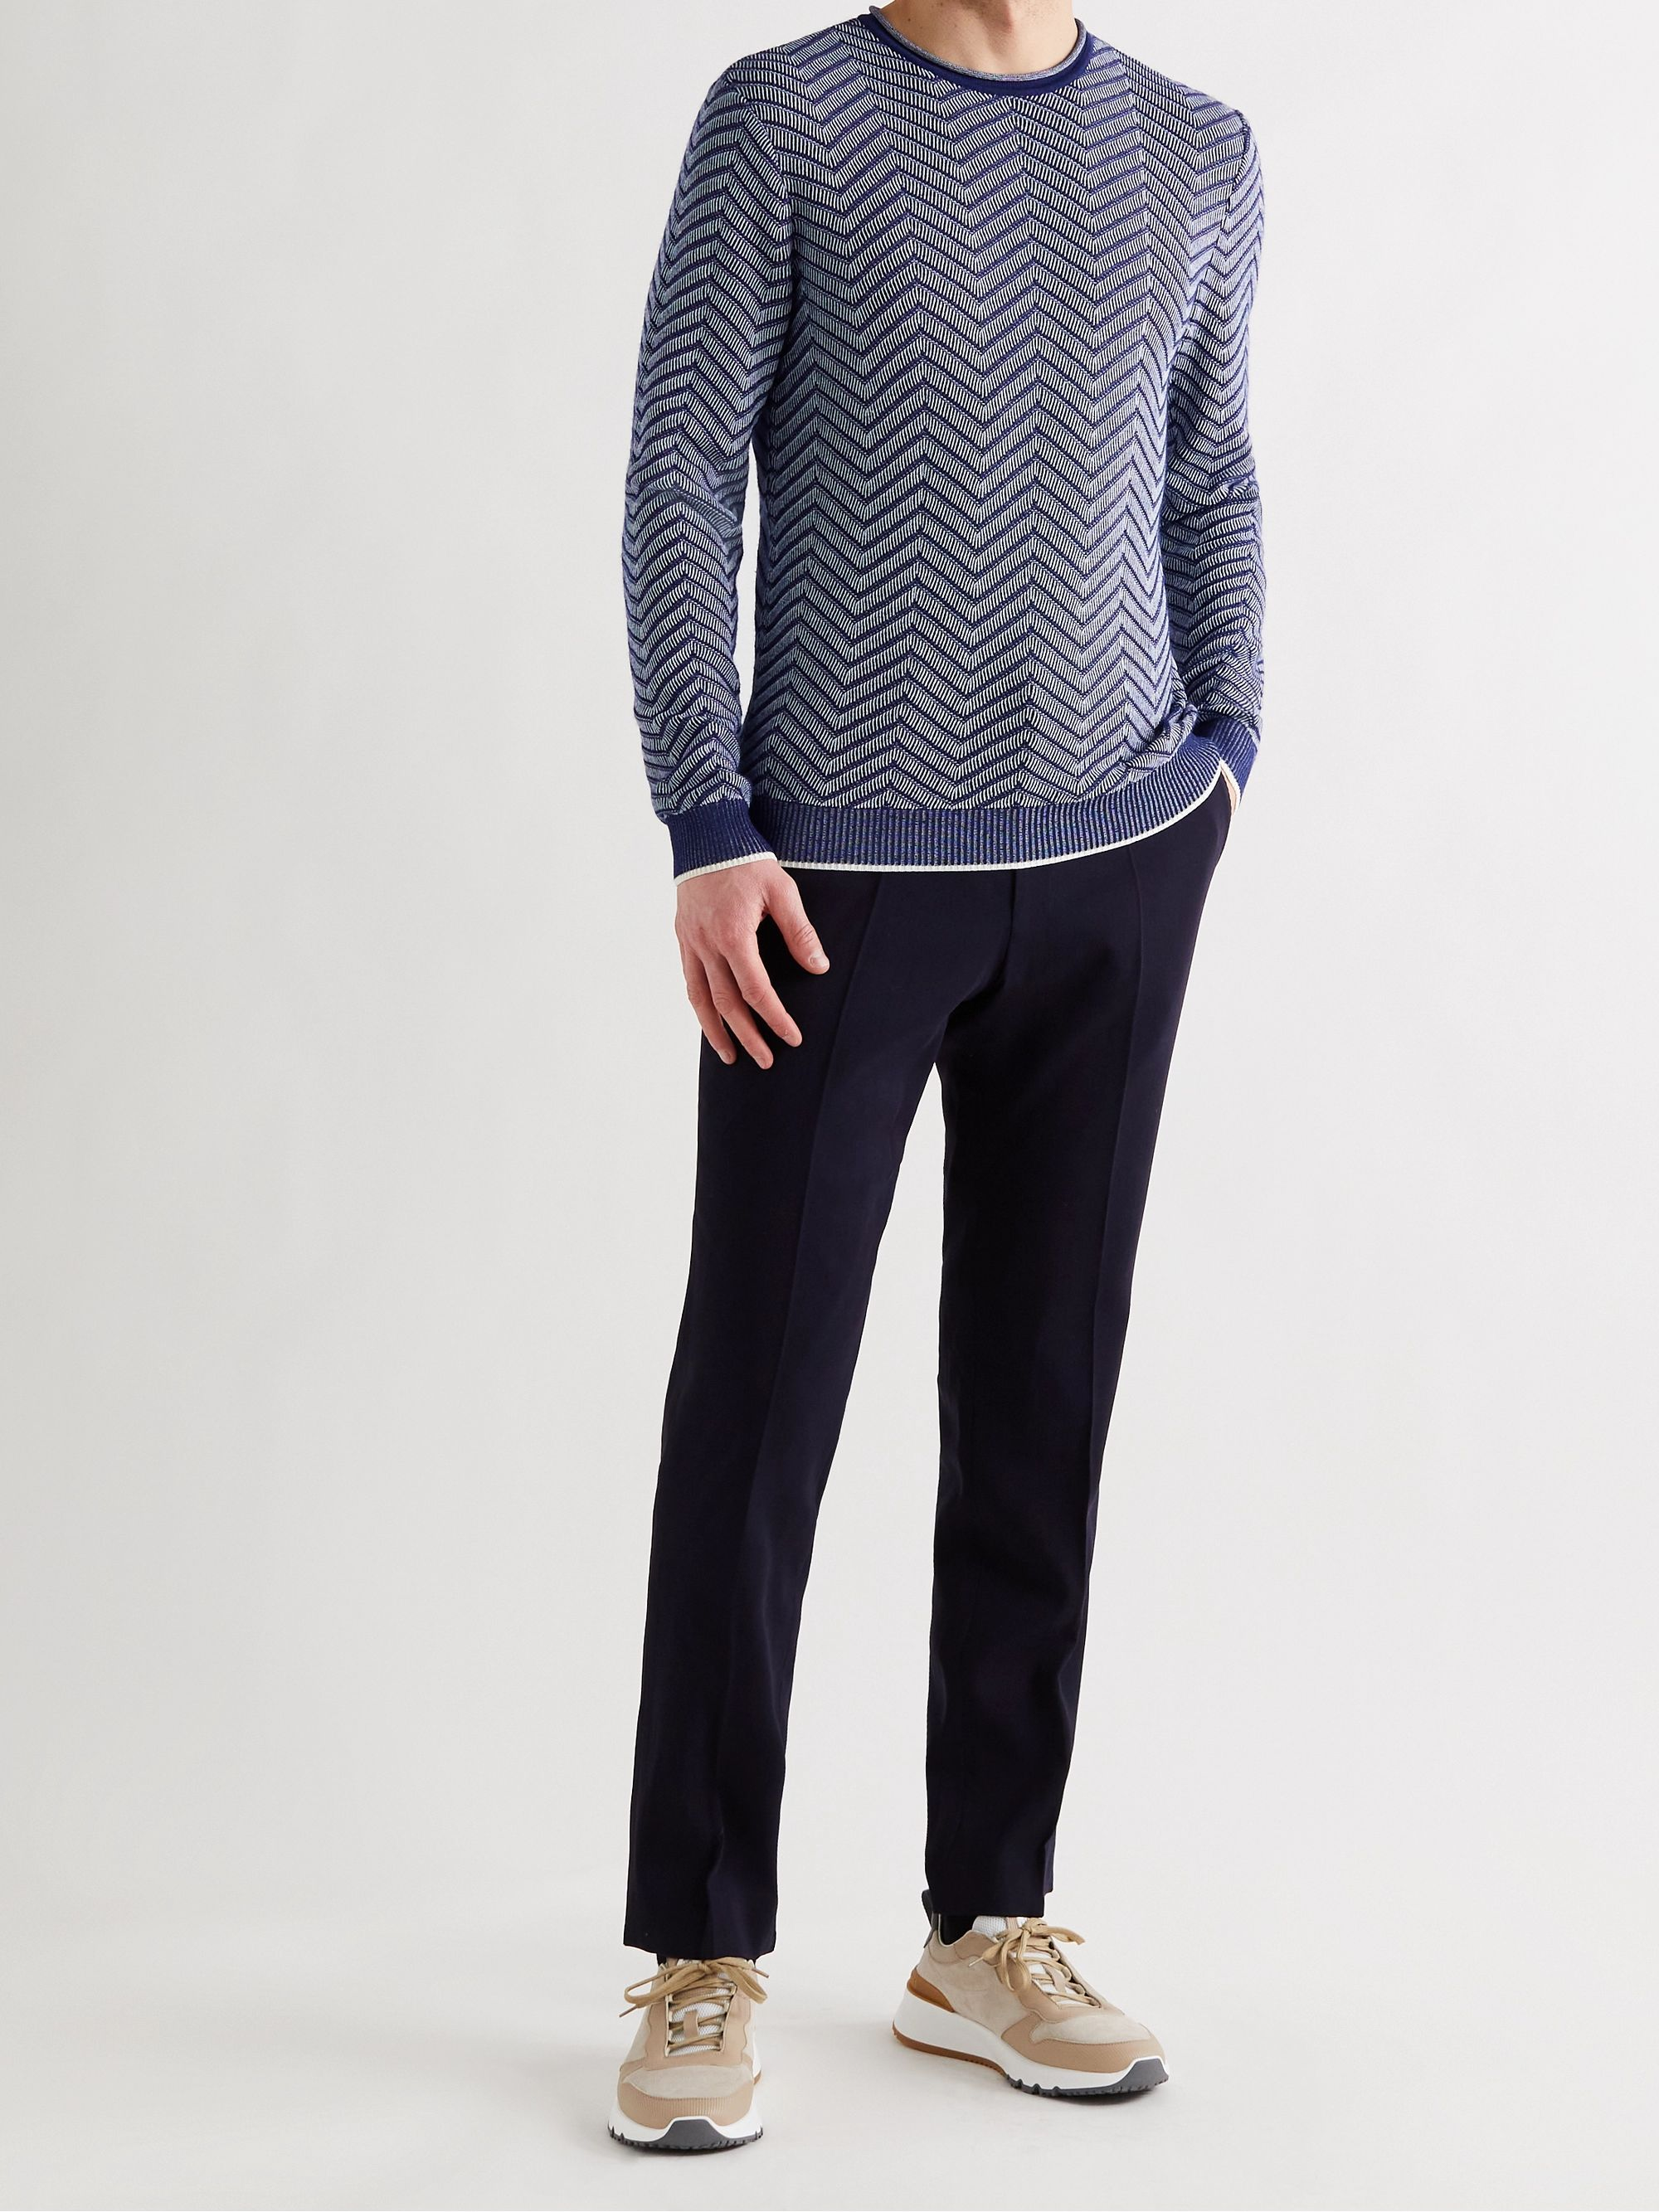 GIORGIO ARMANI Slim-Fit Cashmere-Blend Jacquard Sweater